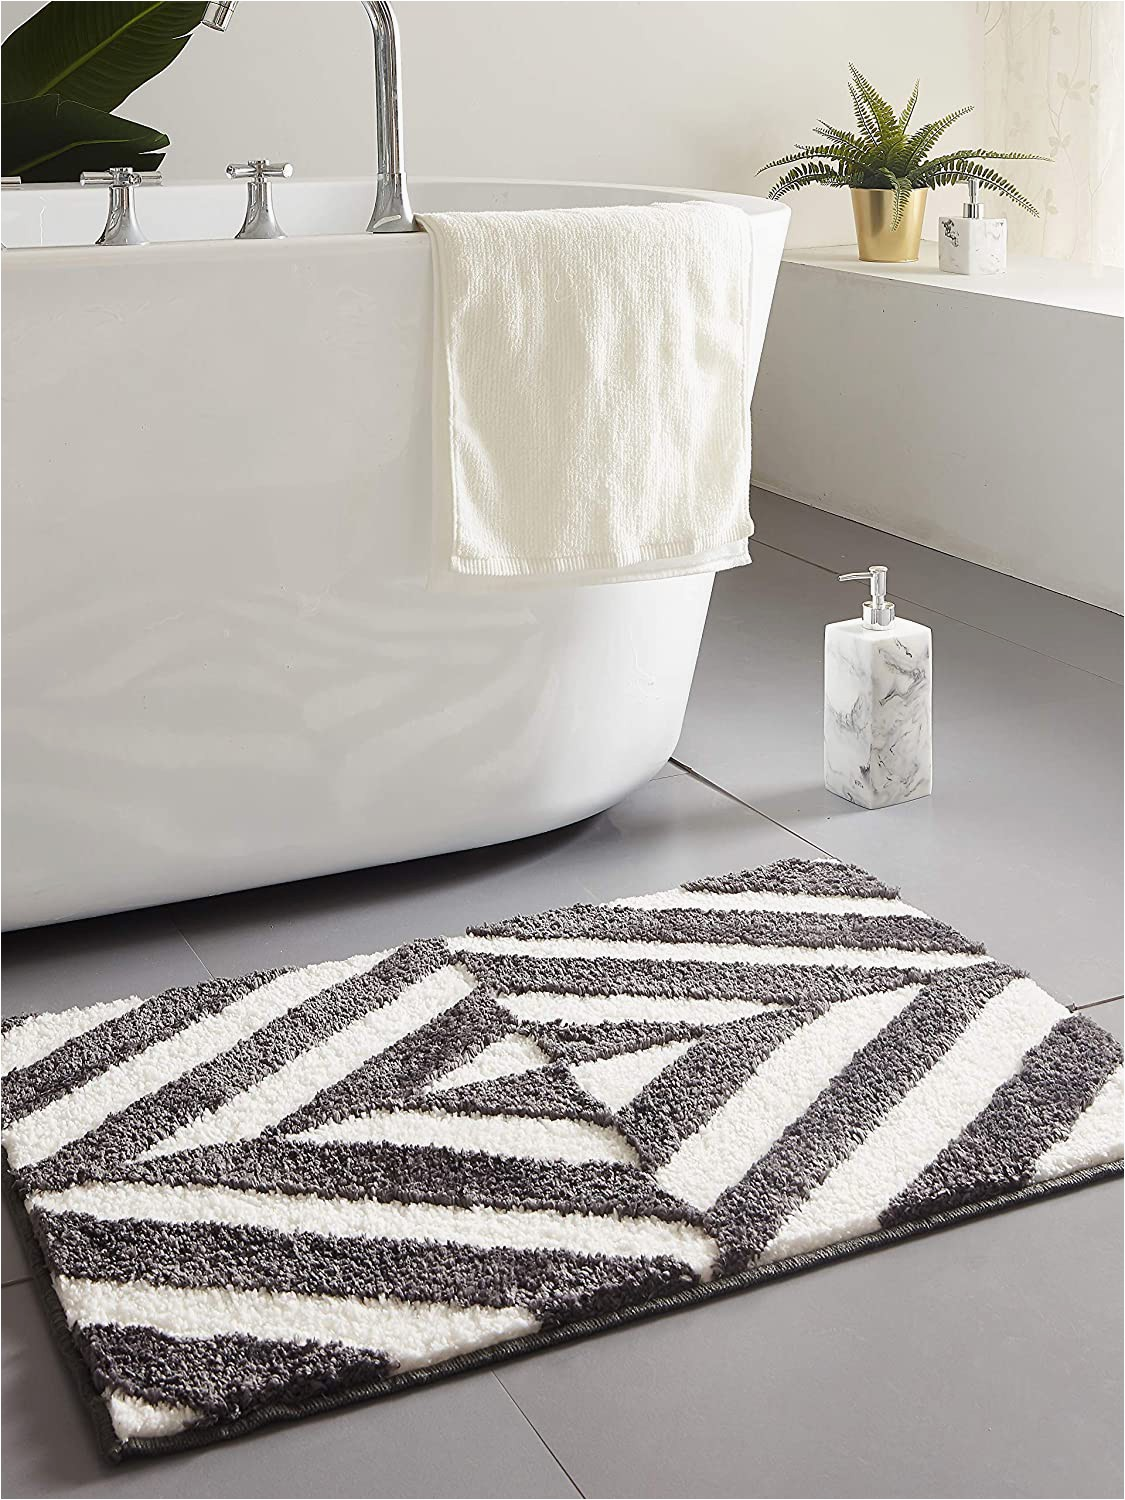 Dark Gray Bath Rugs Amazon Desiderare Thick Fluffy Dark Grey Bath Mat 31